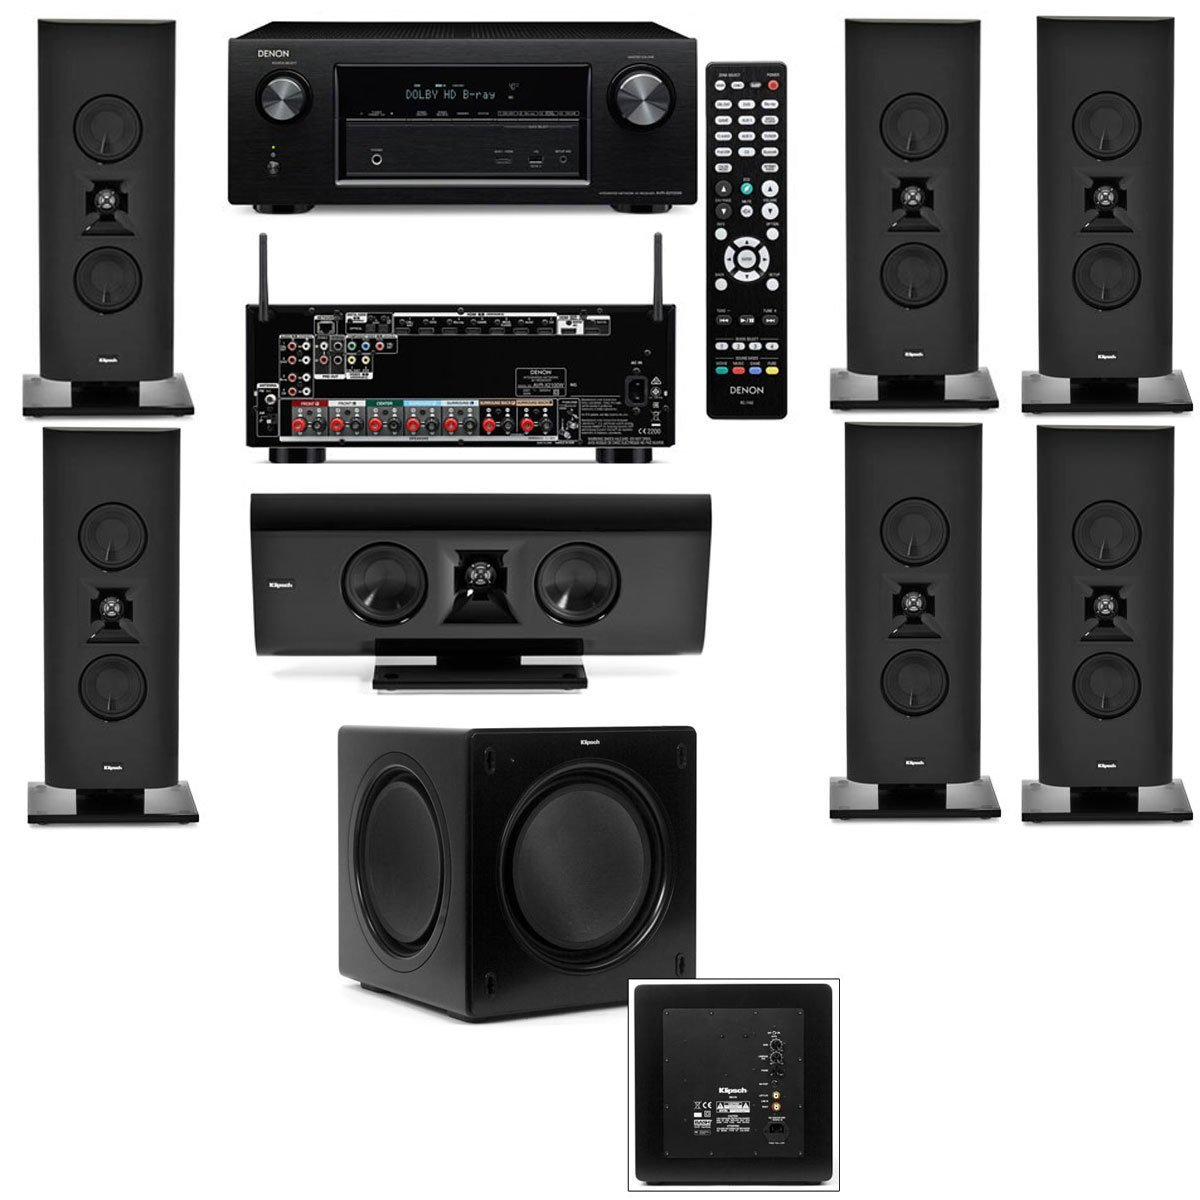 Best 7.1 Home Theater System 2017 1